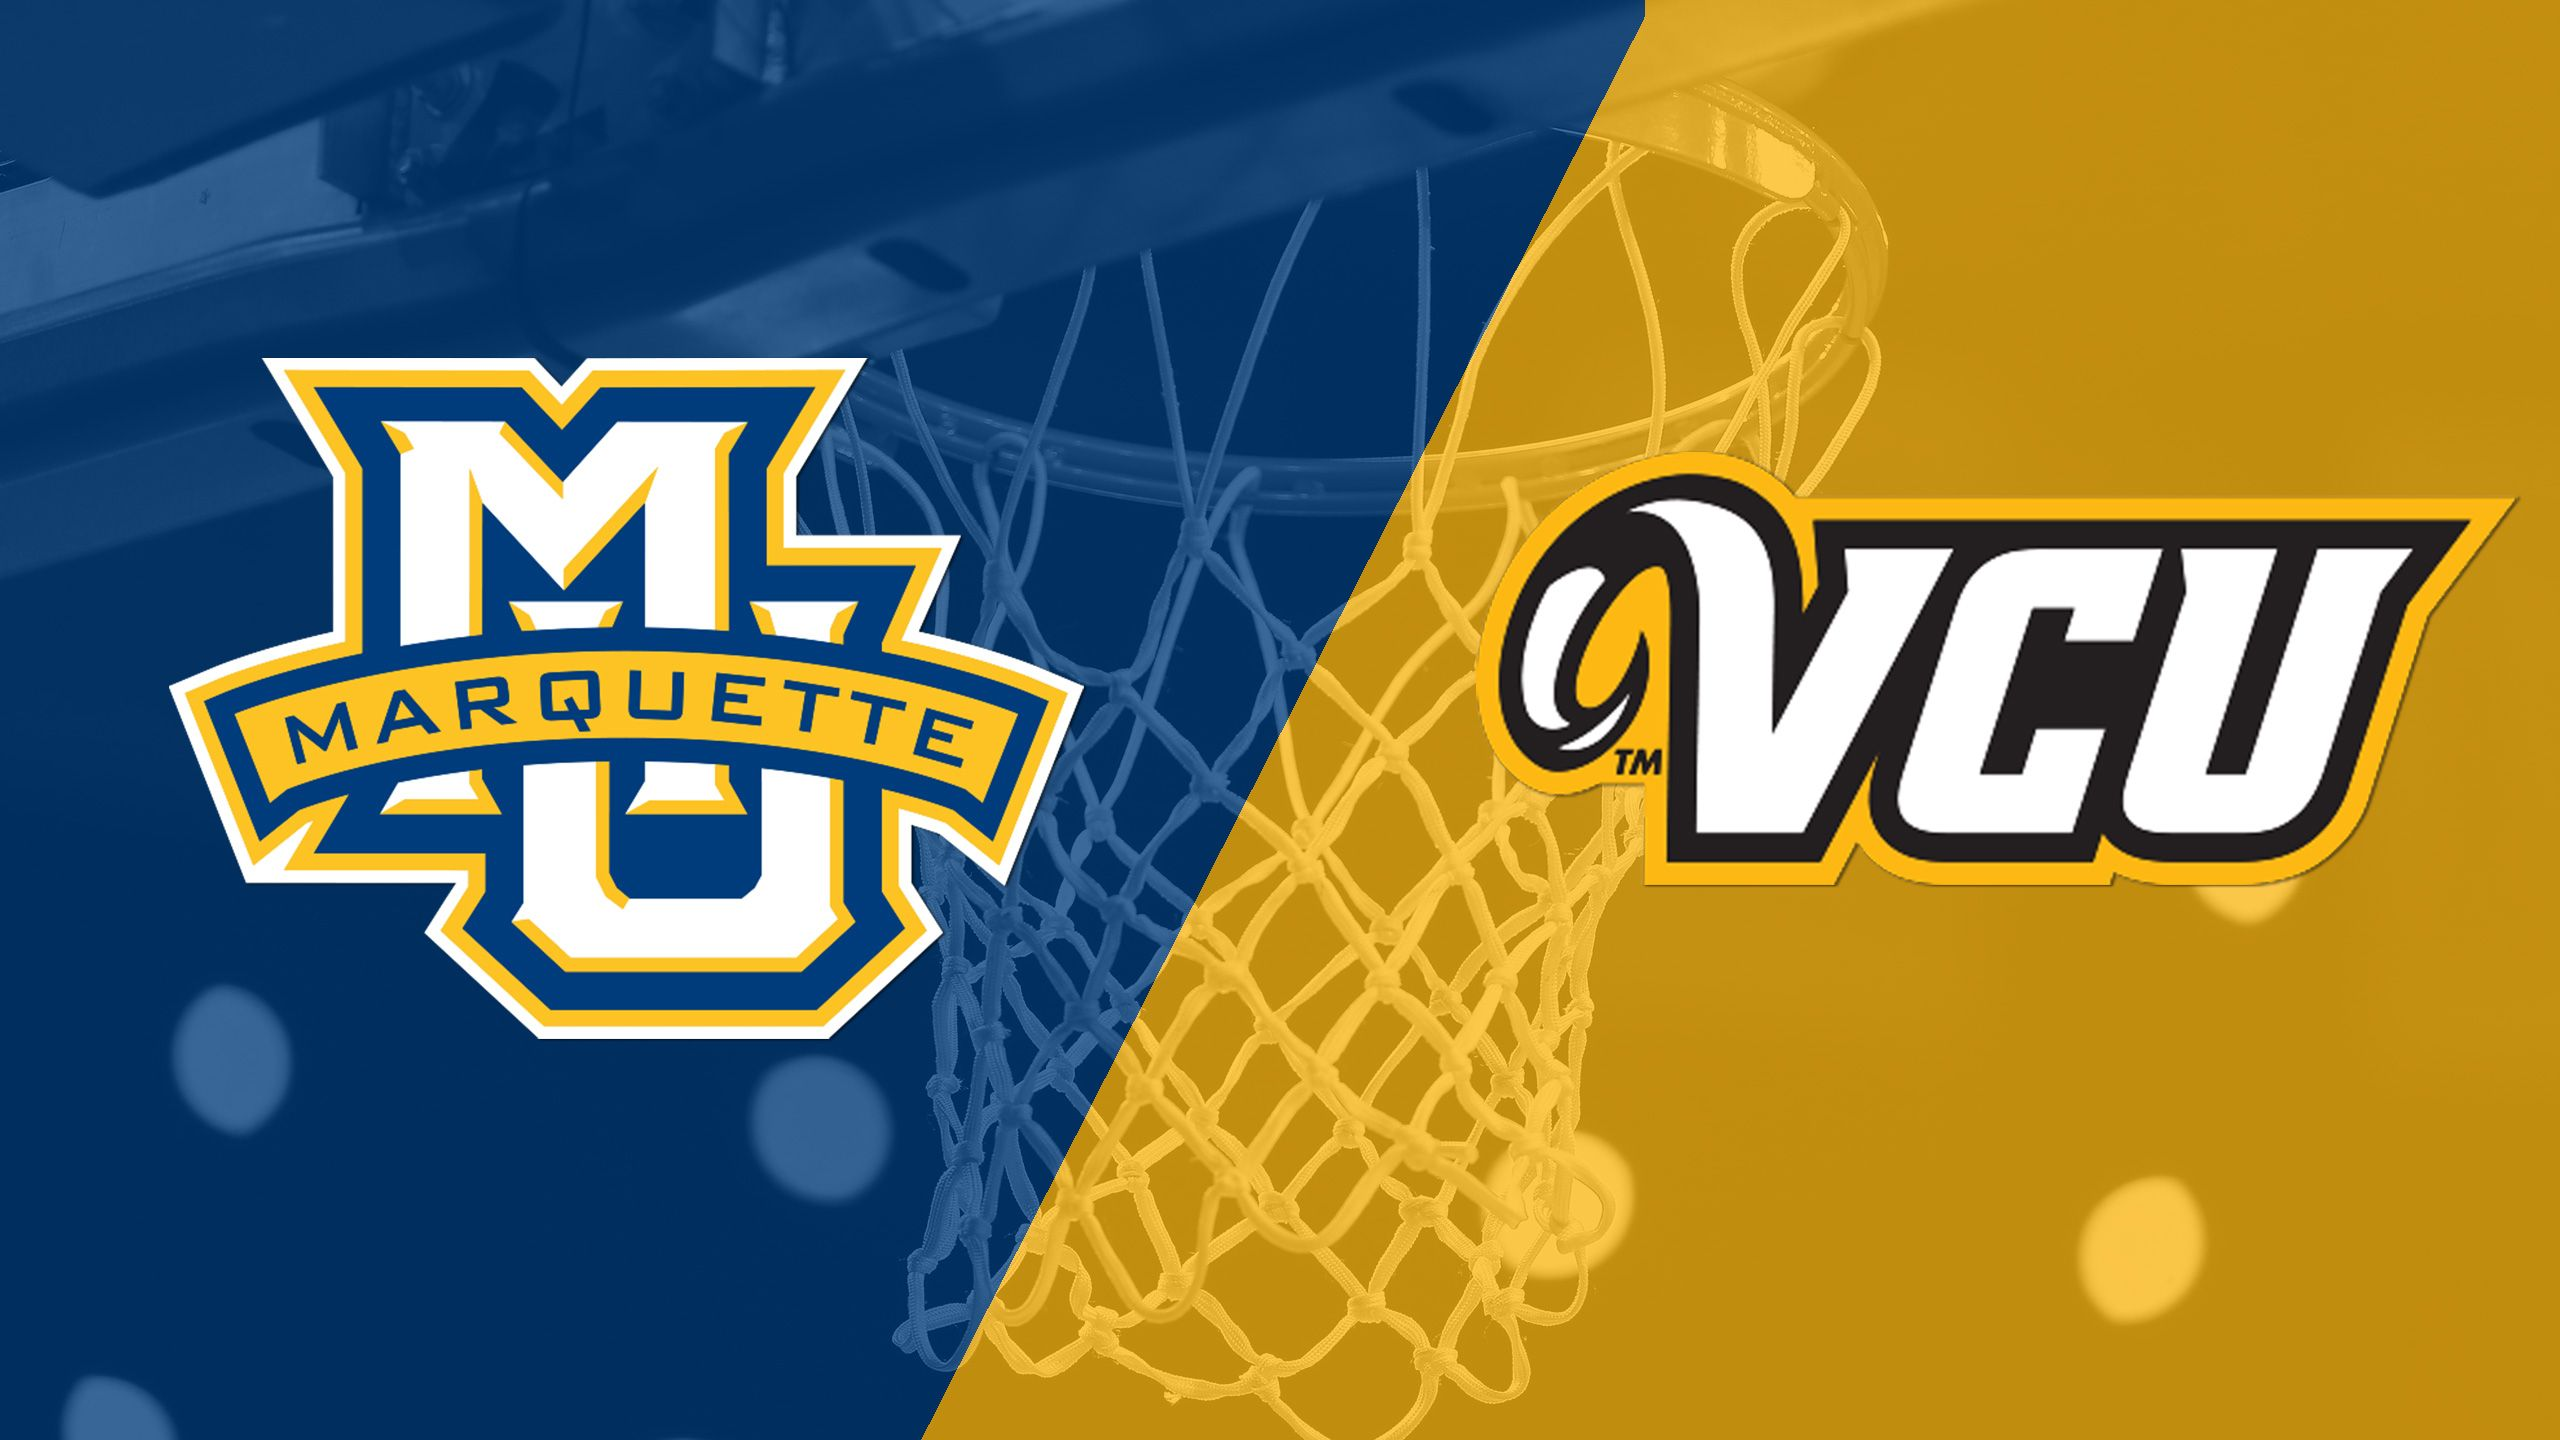 Above The Rim - Marquette vs. VCU (Quarterfinal #1) (Maui Invitational)